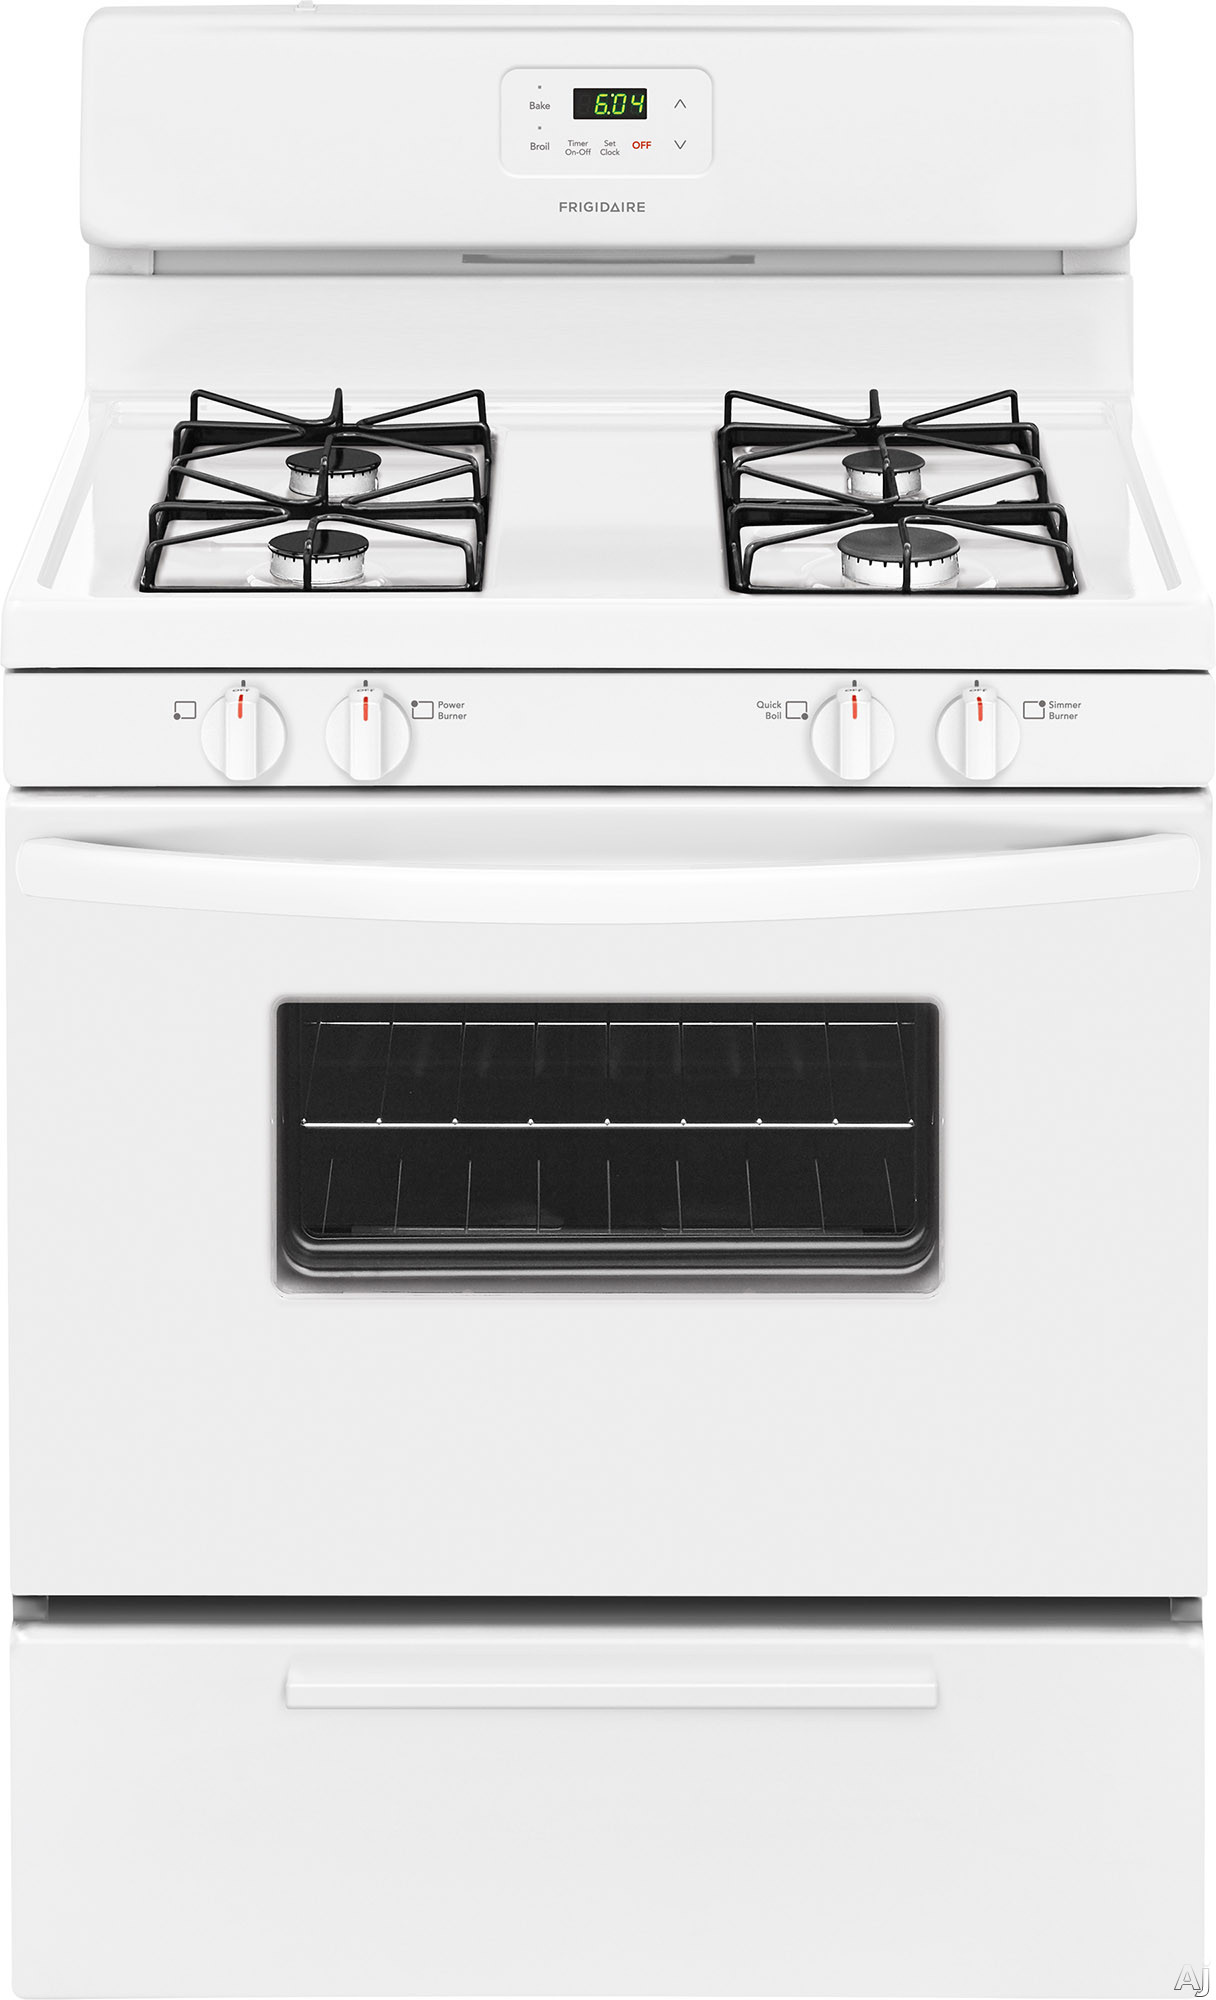 Frigidaire FFGF3016TW 30 Inch Freestanding Gas Range with Simmer Burner, Broiler Drawer, 4 Sealed Burners and 4.2 cu. ft. Capacity: White